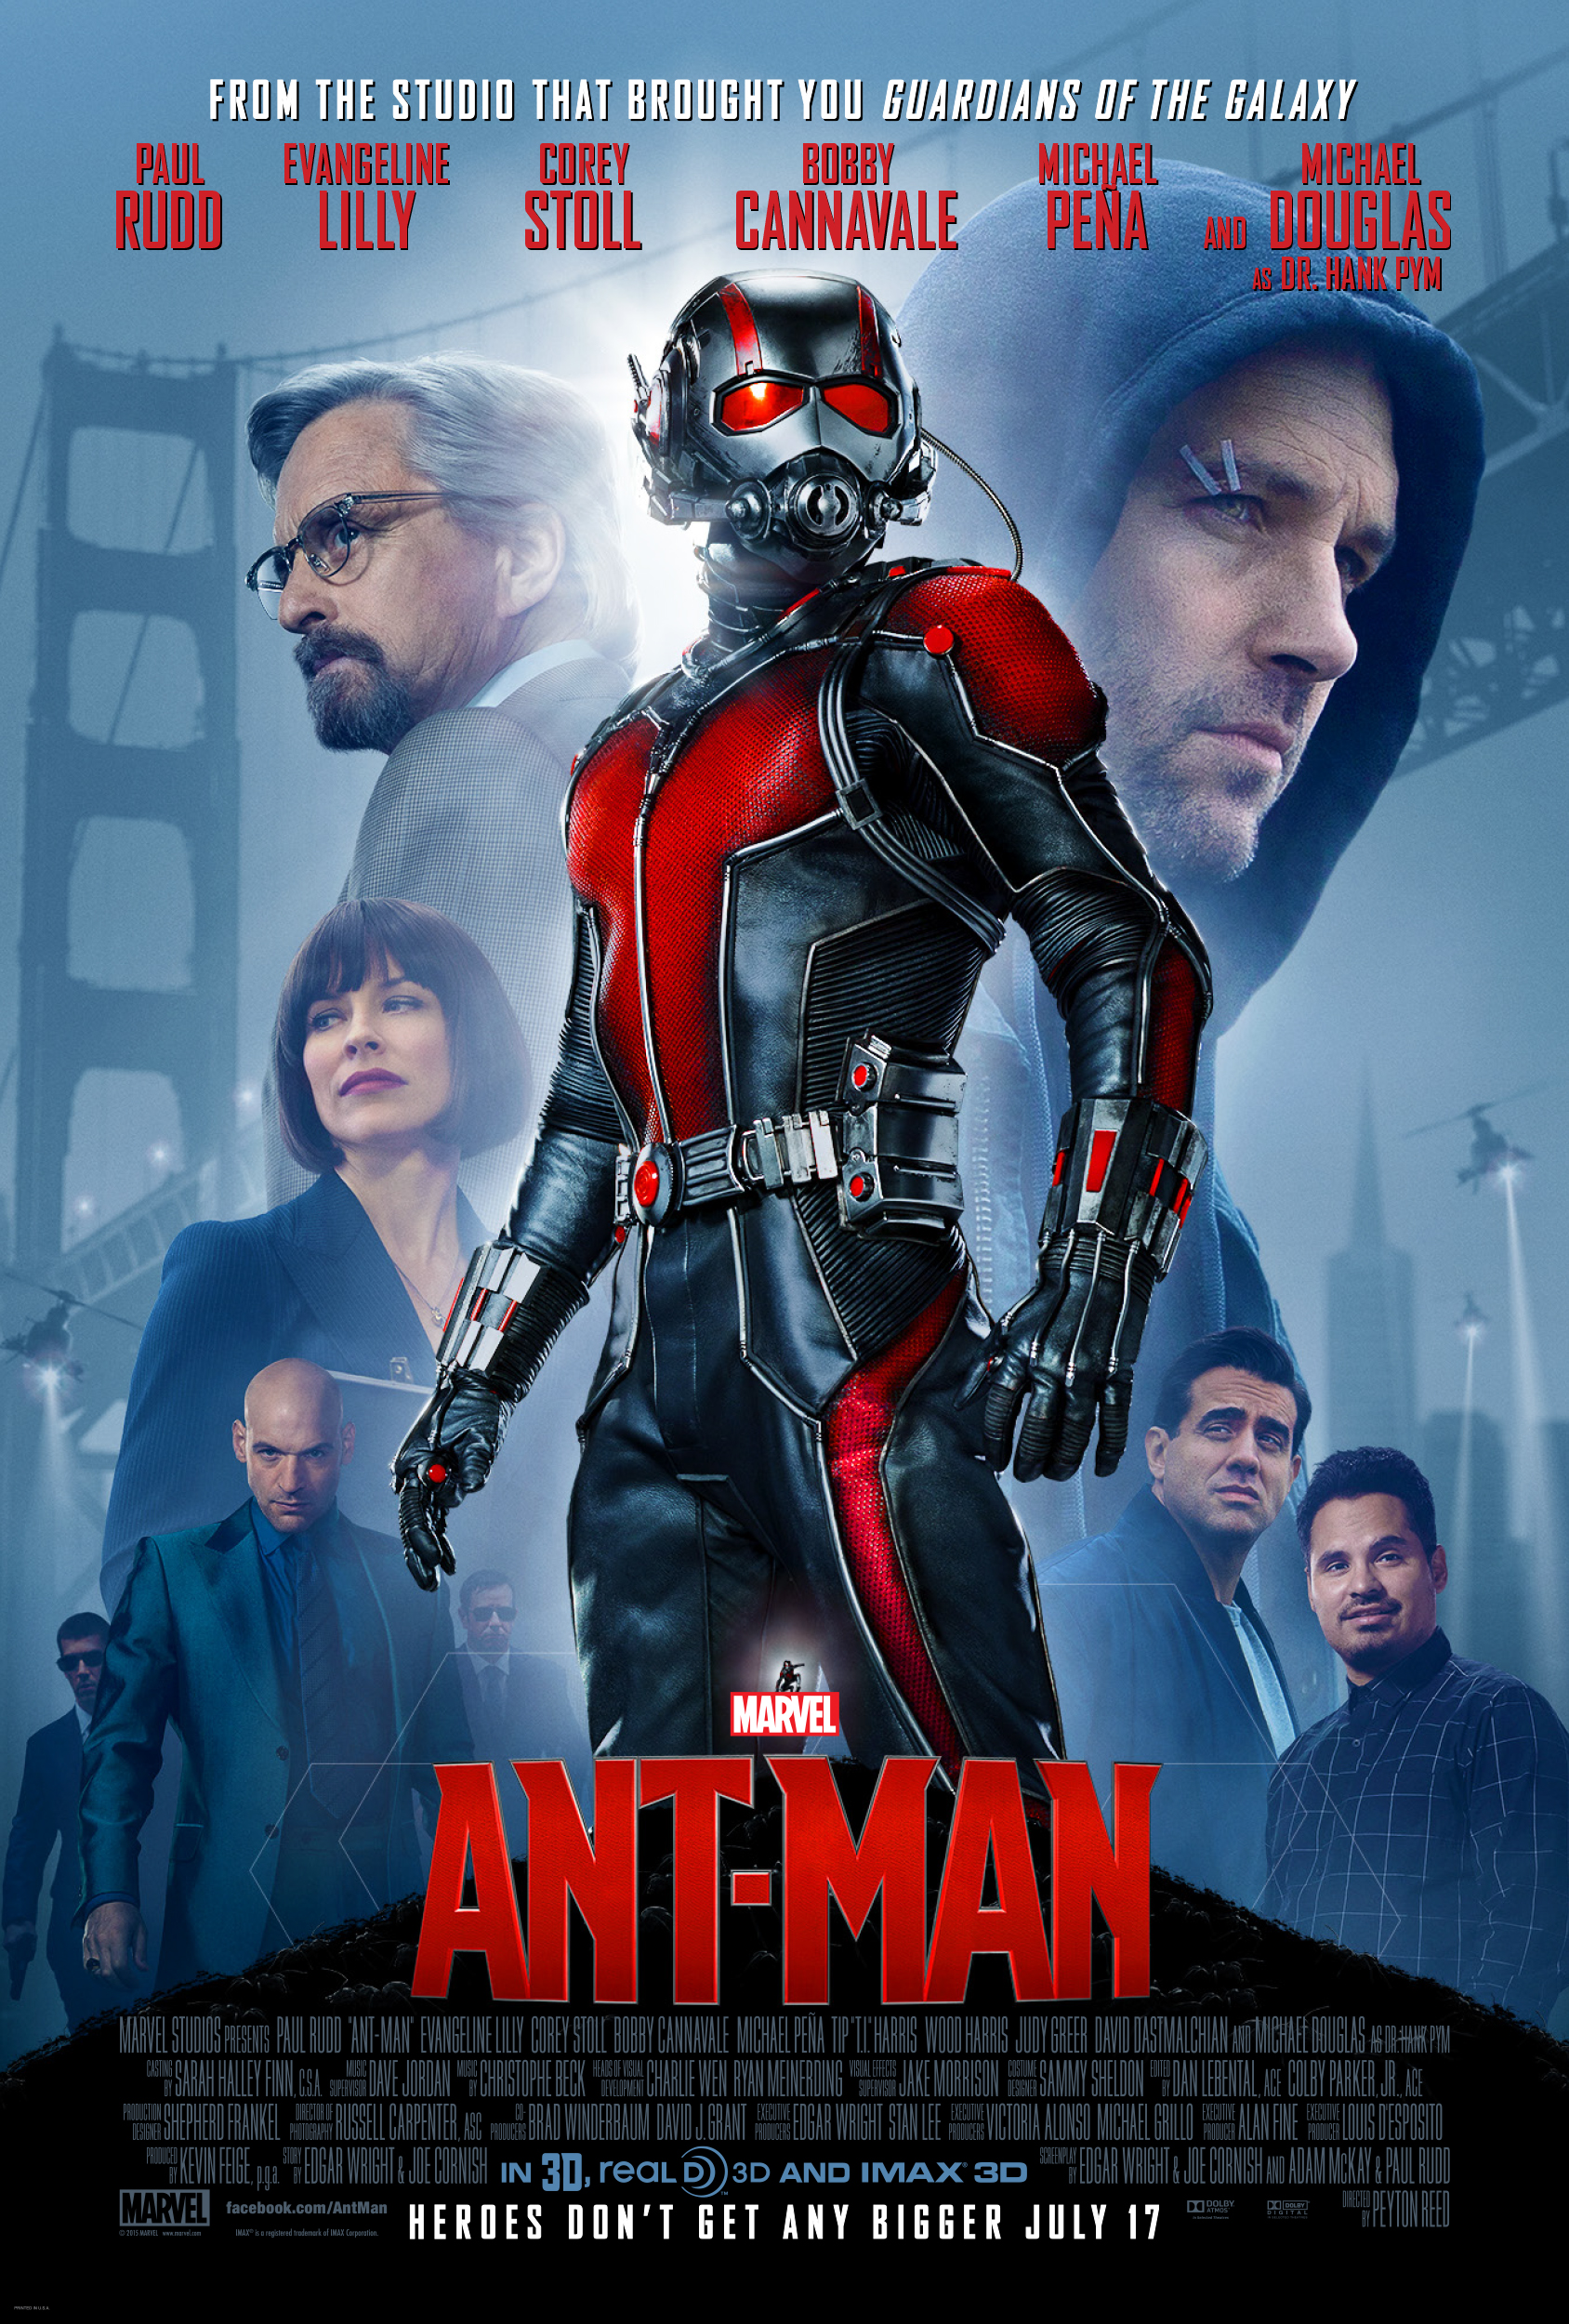 Marvel's ANT-MAN-Opens in Theaters Today 7/17 {Movie Review}